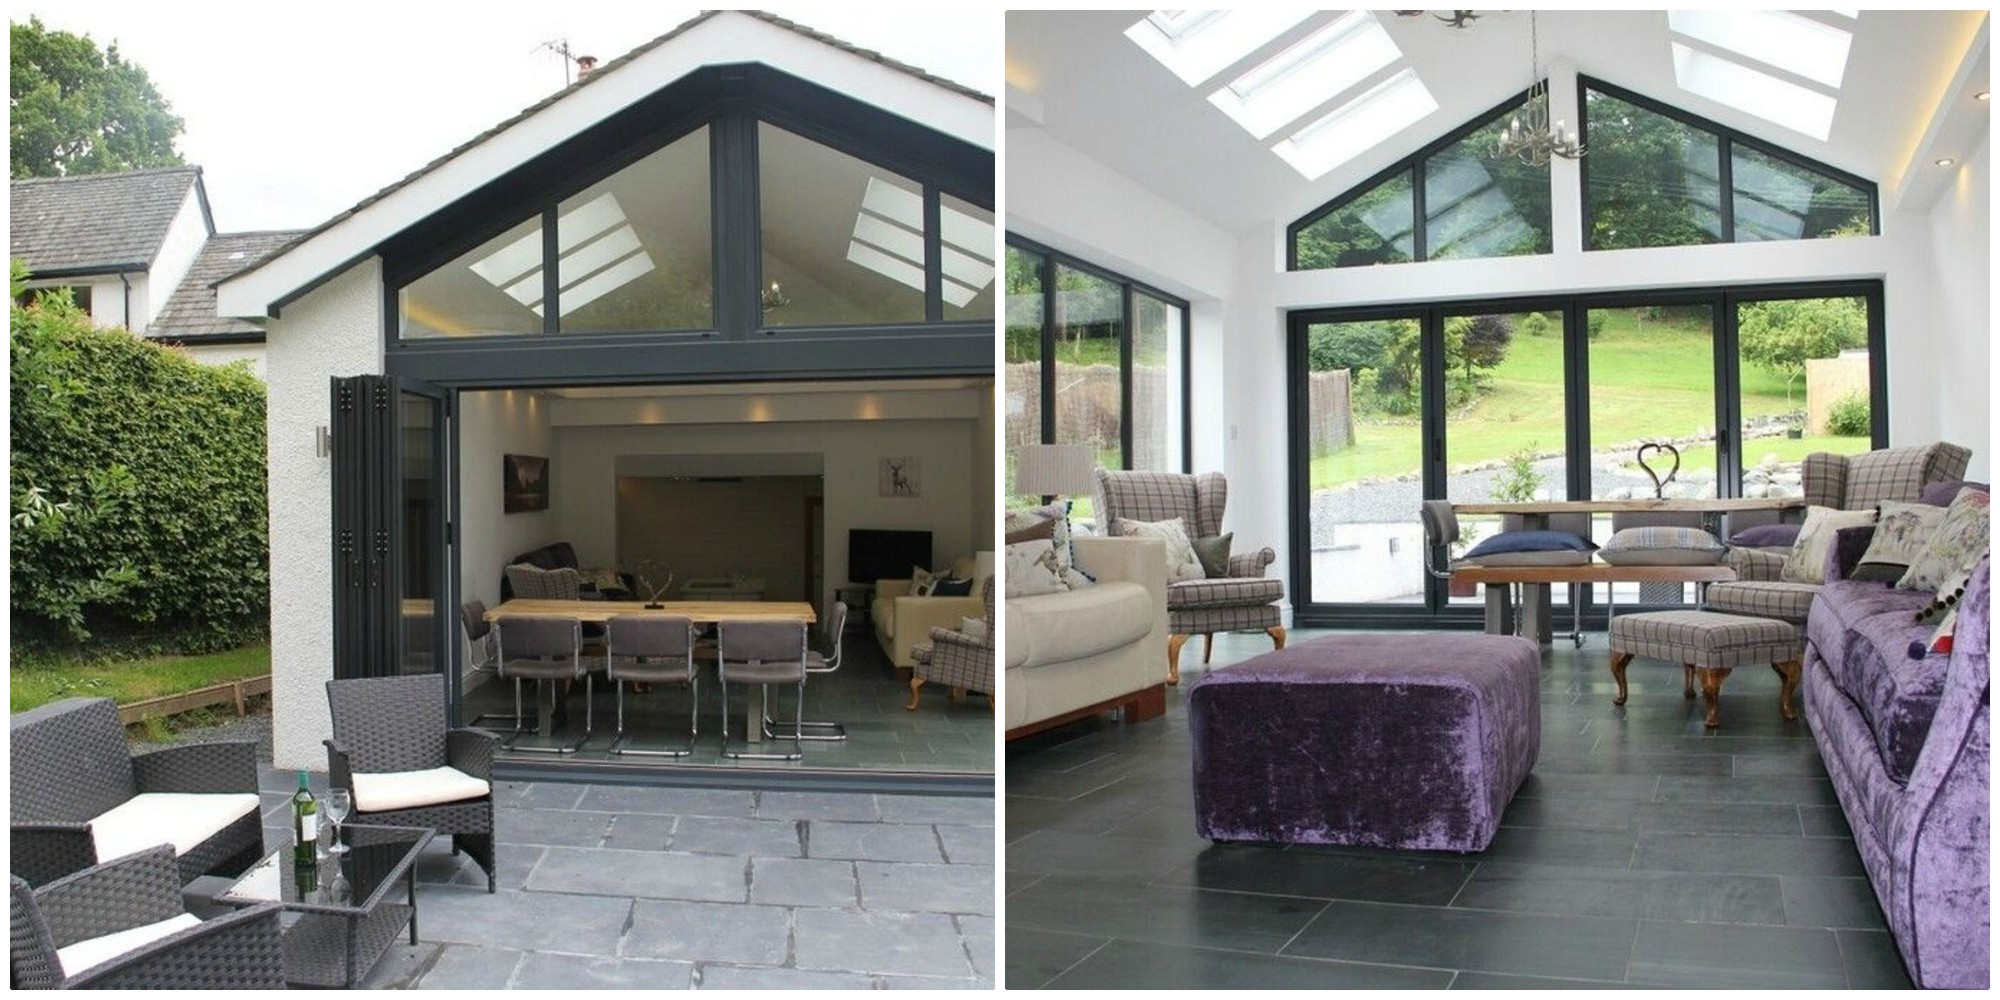 We love this glass wall with bi-fold doors, leading to the slate patio and garden